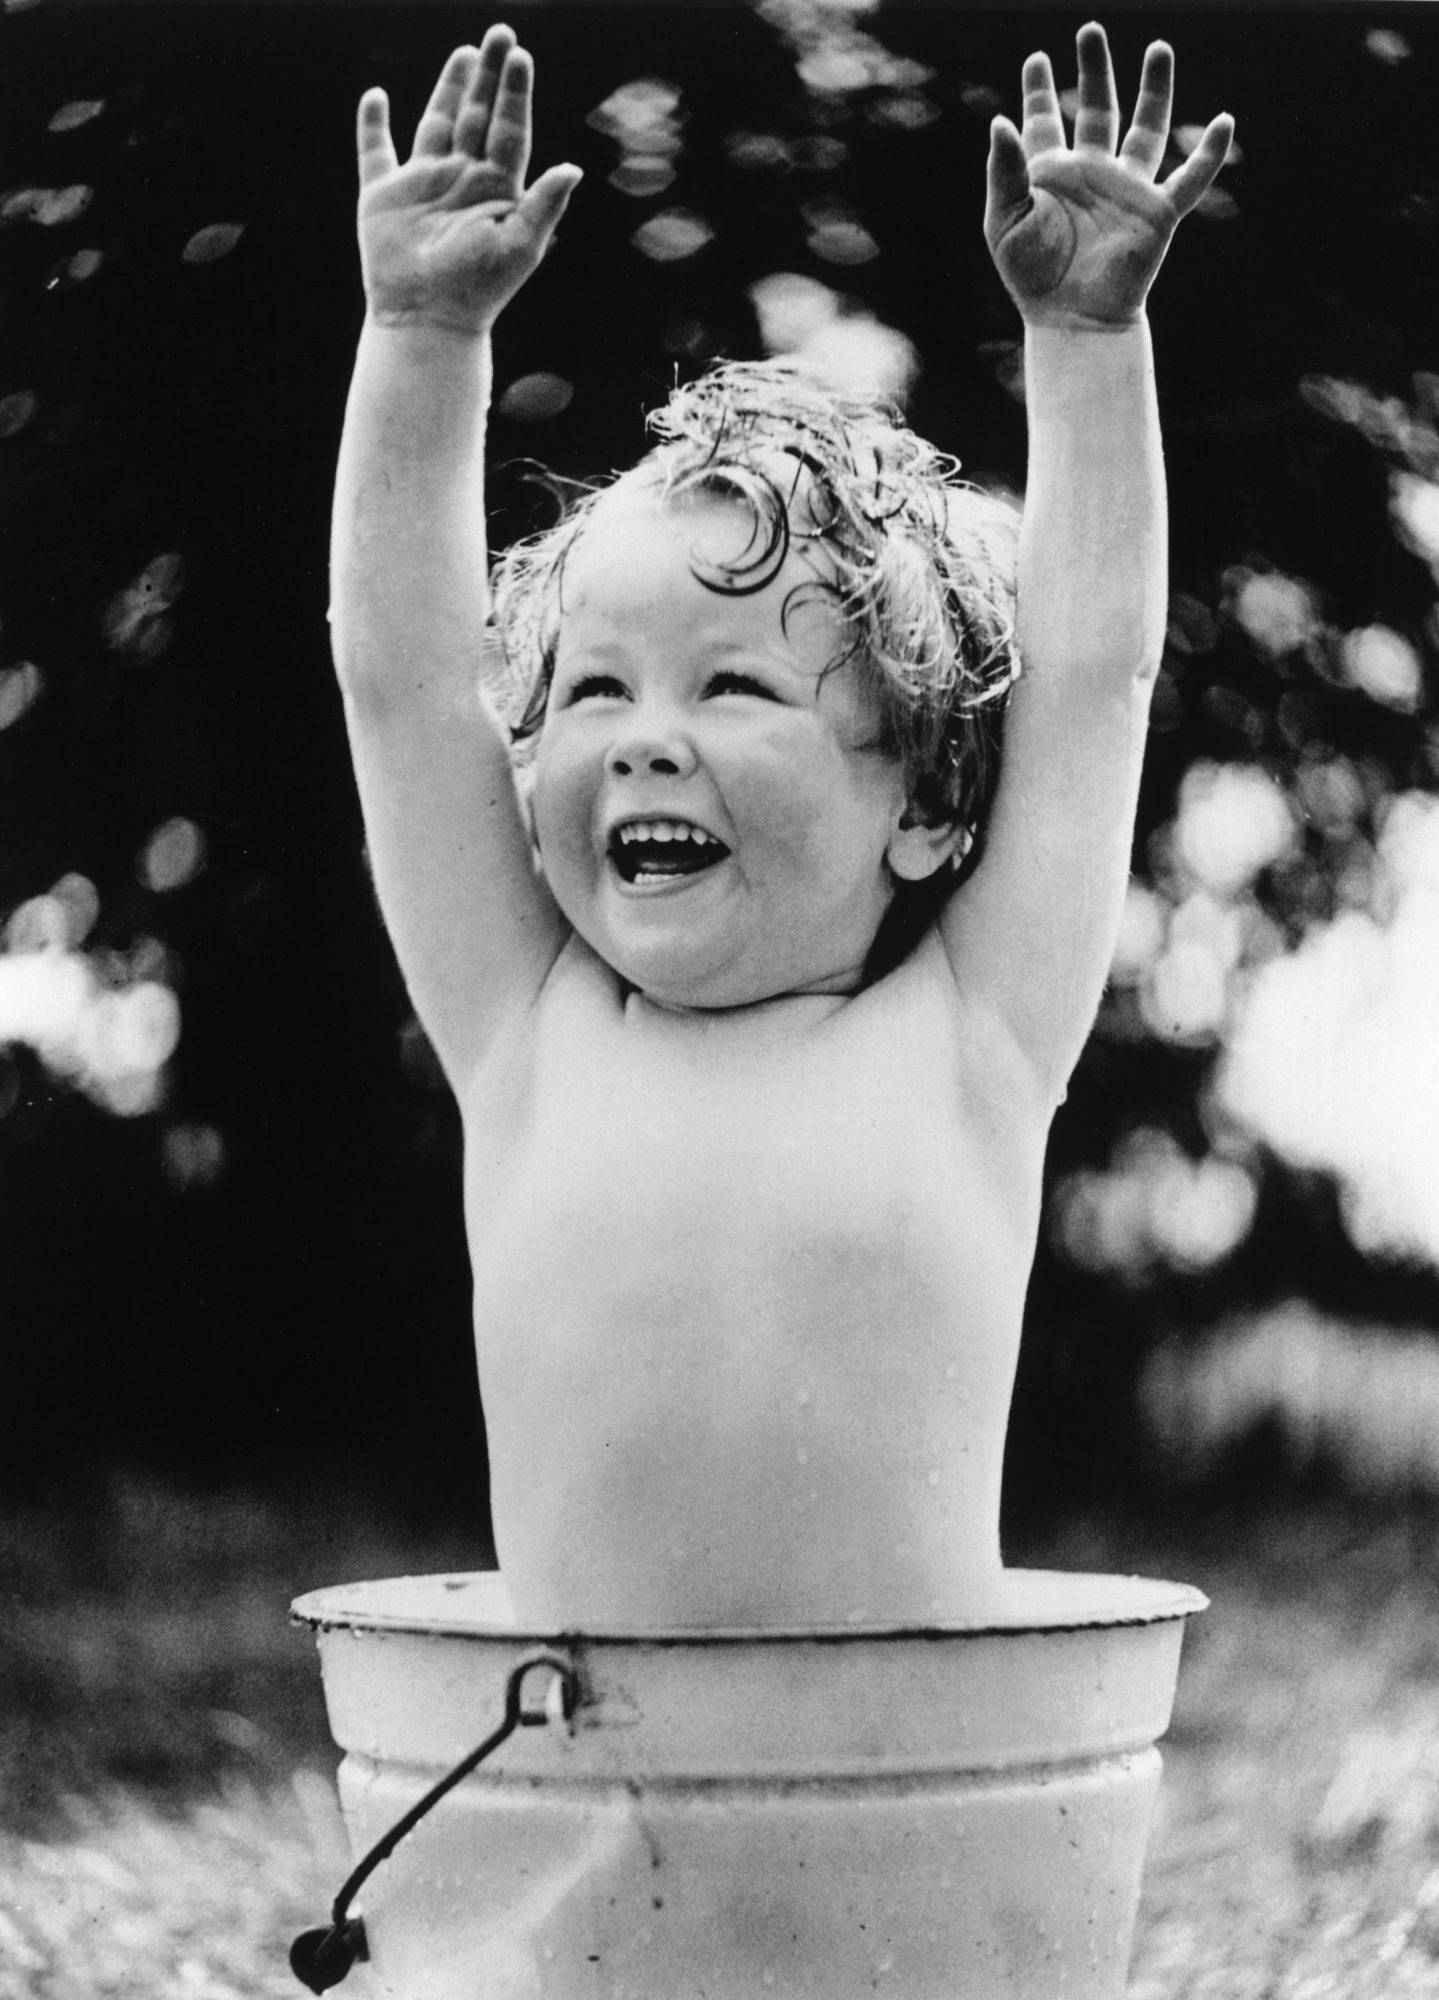 Baby in Bucket with Hands Raised